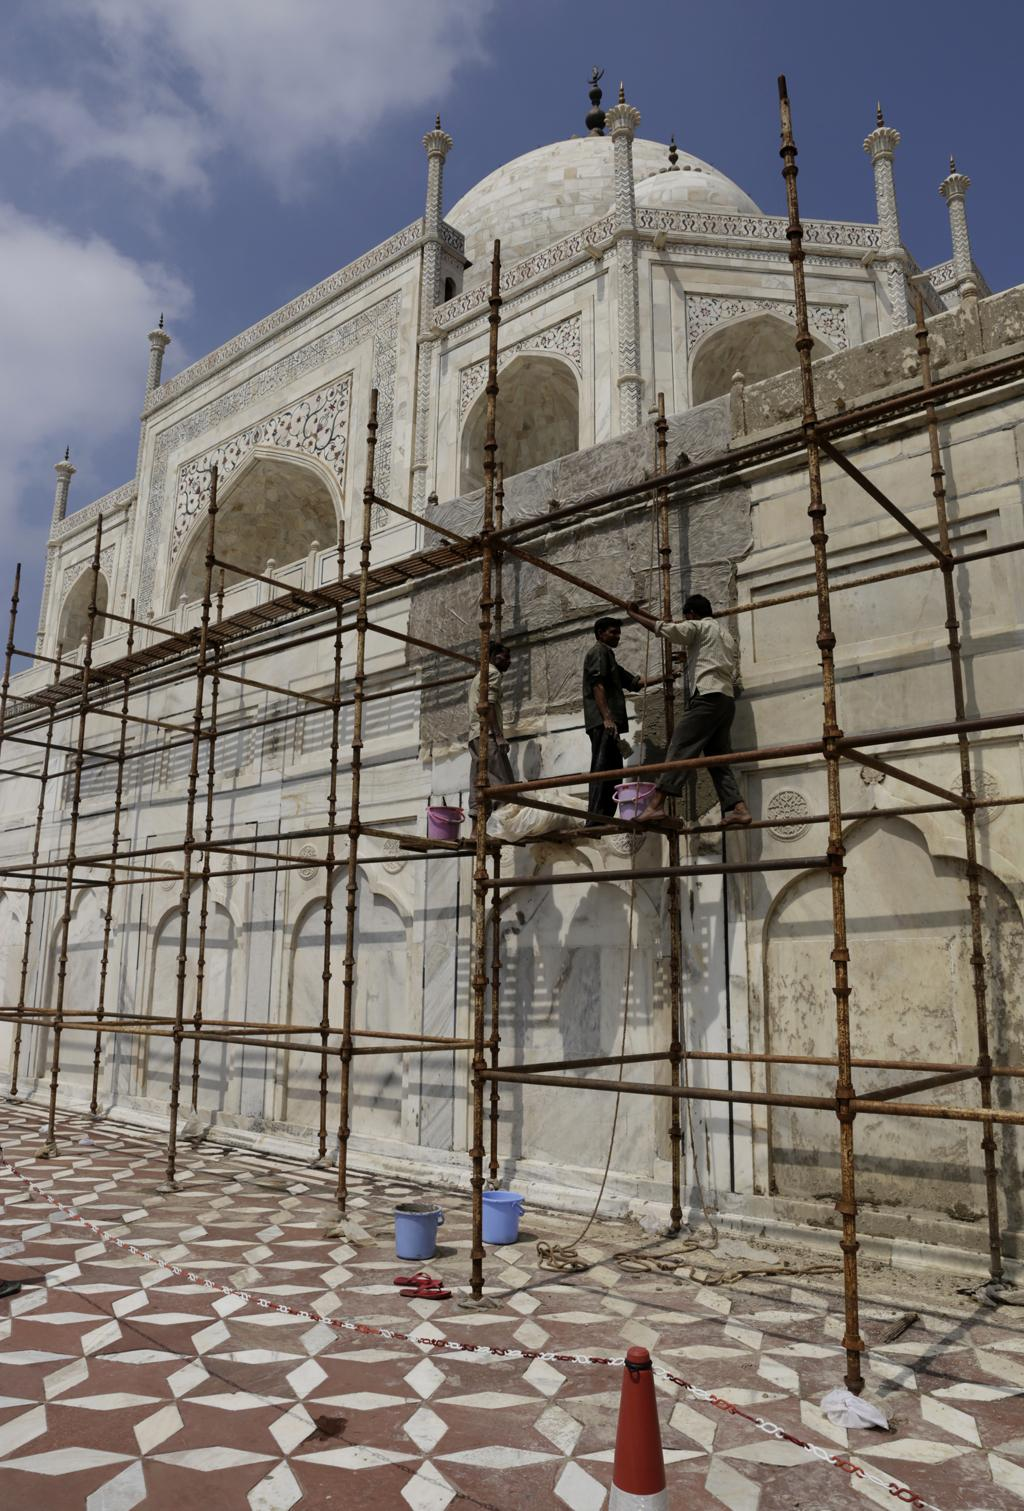 Another threat to the Taj is the yellowing of the marble. To tackle this, the authorities apply a mudpack to the building at regular intervals (once in every 2-3 years)